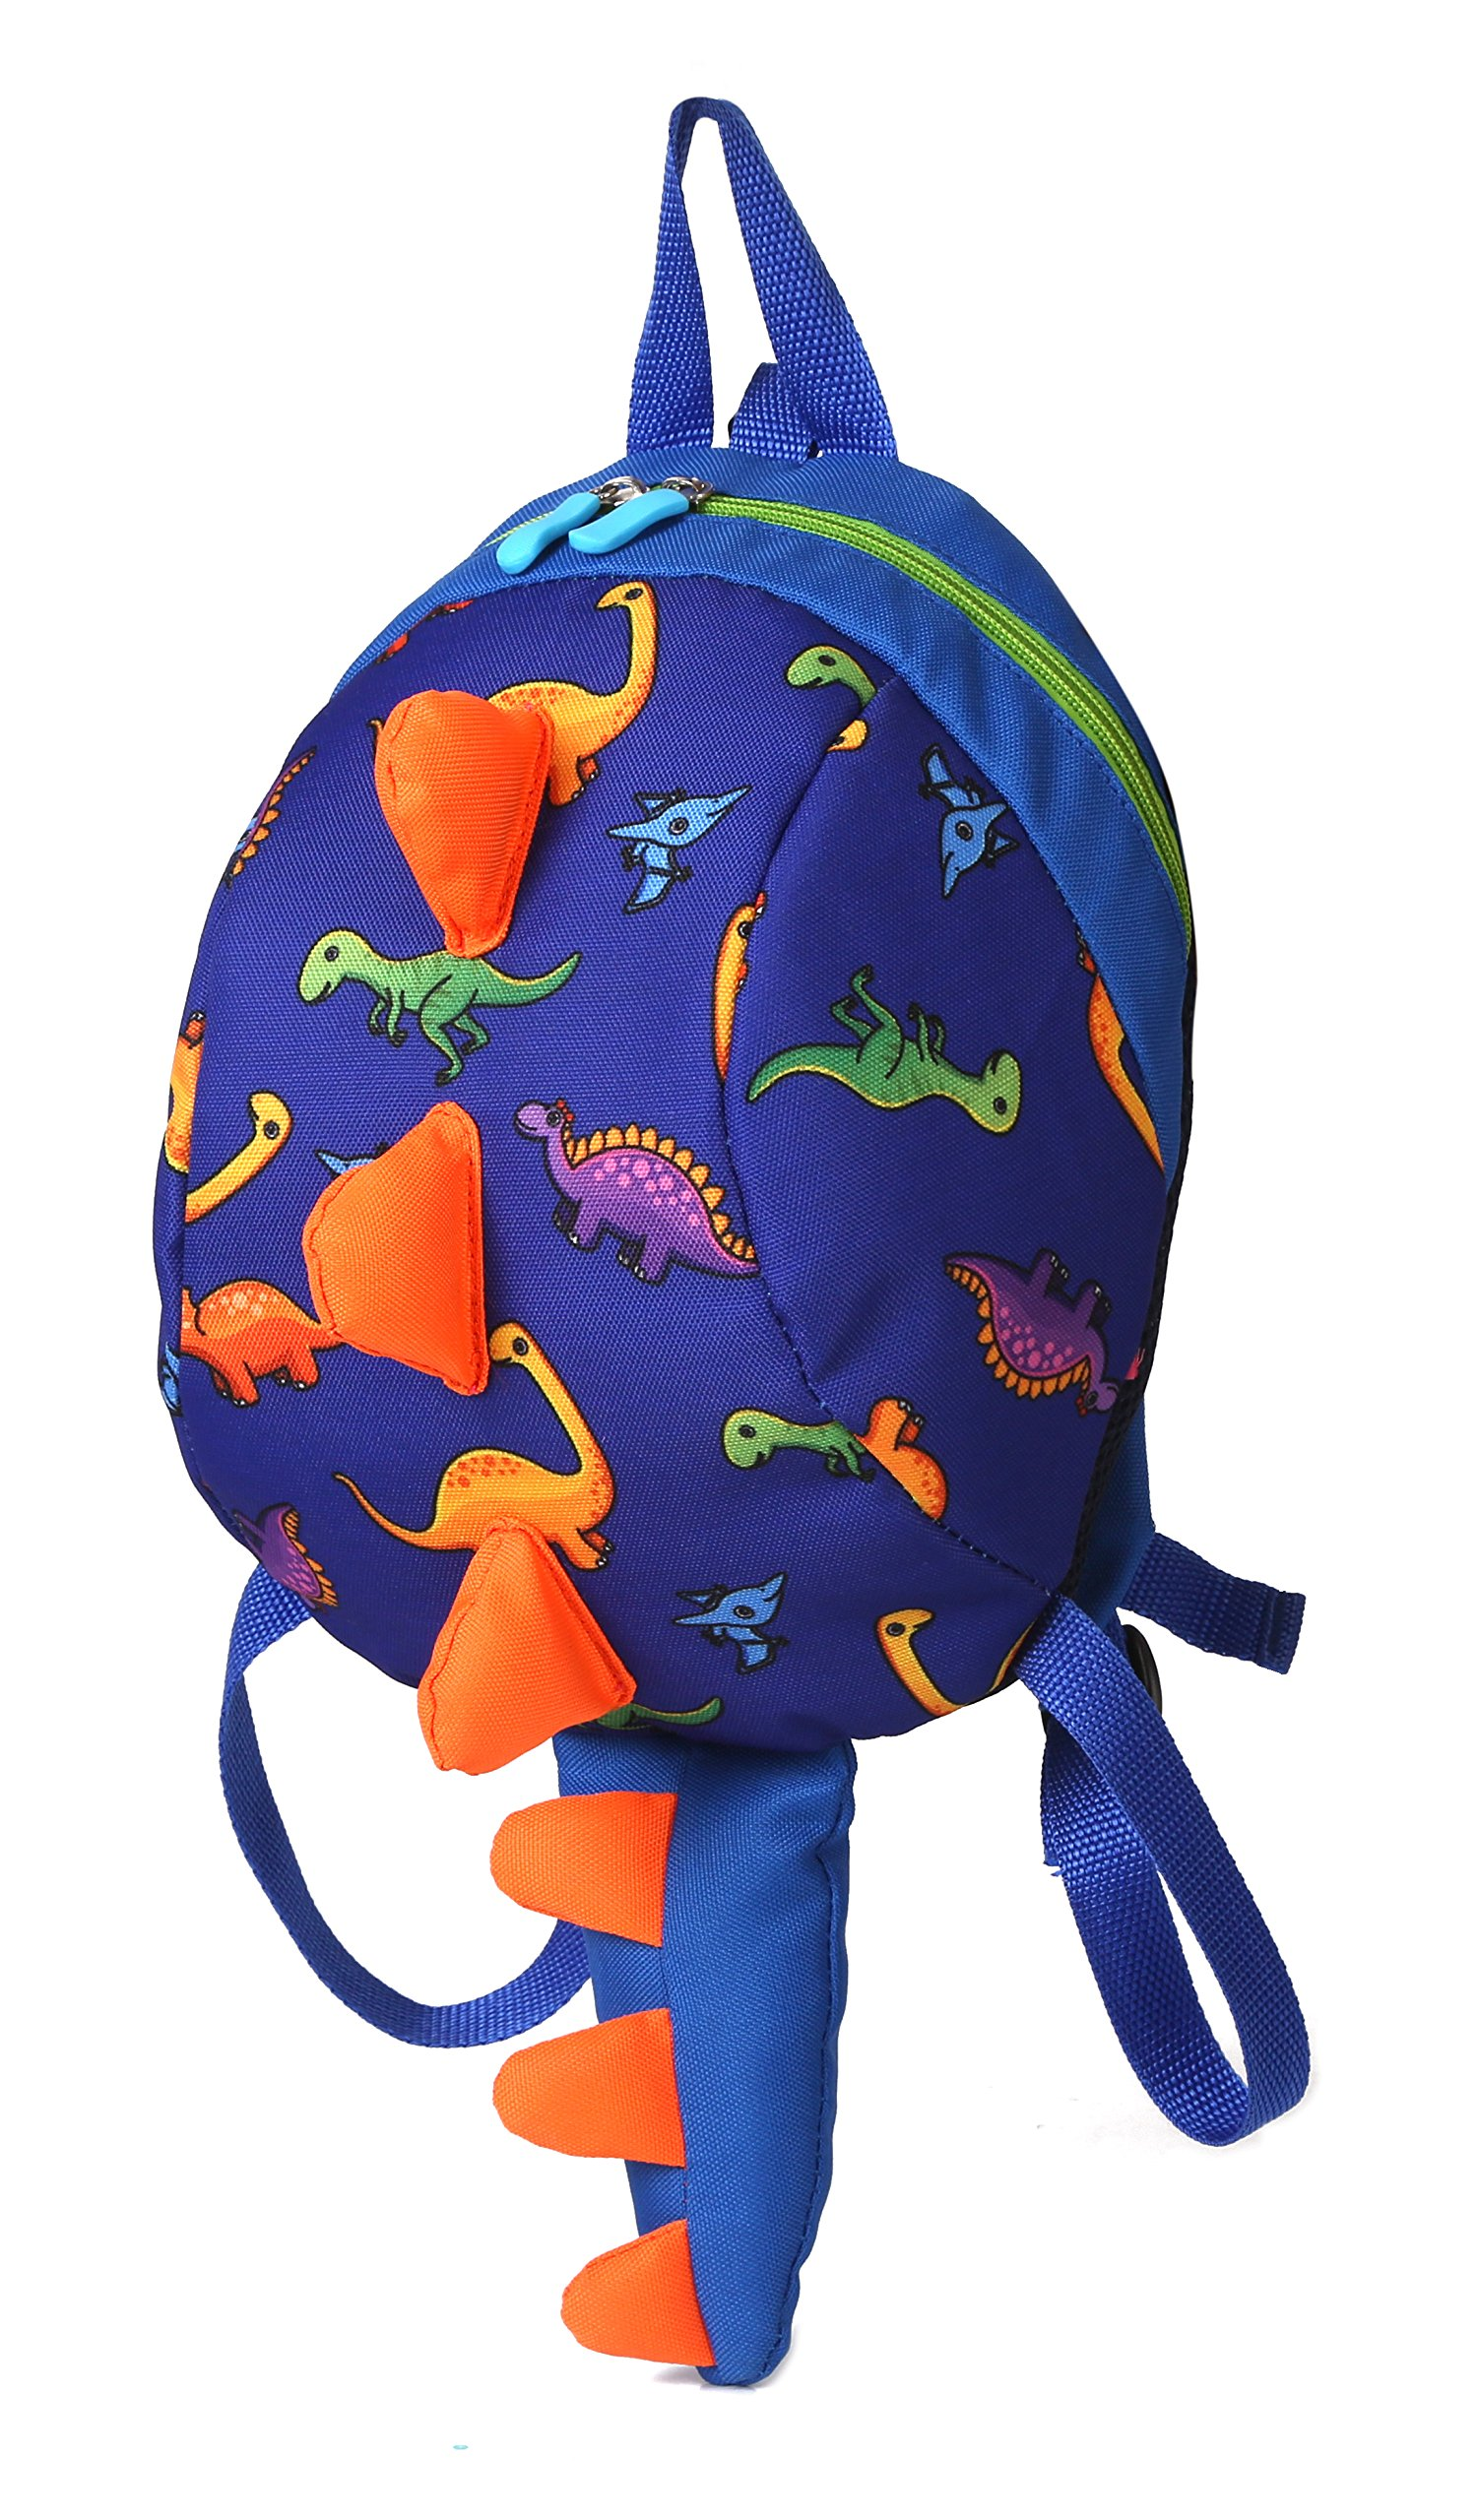 Toddler kids Dinosaur Backpack Book Bags with Safety Leash for Boys Girls (1 Dark blue)